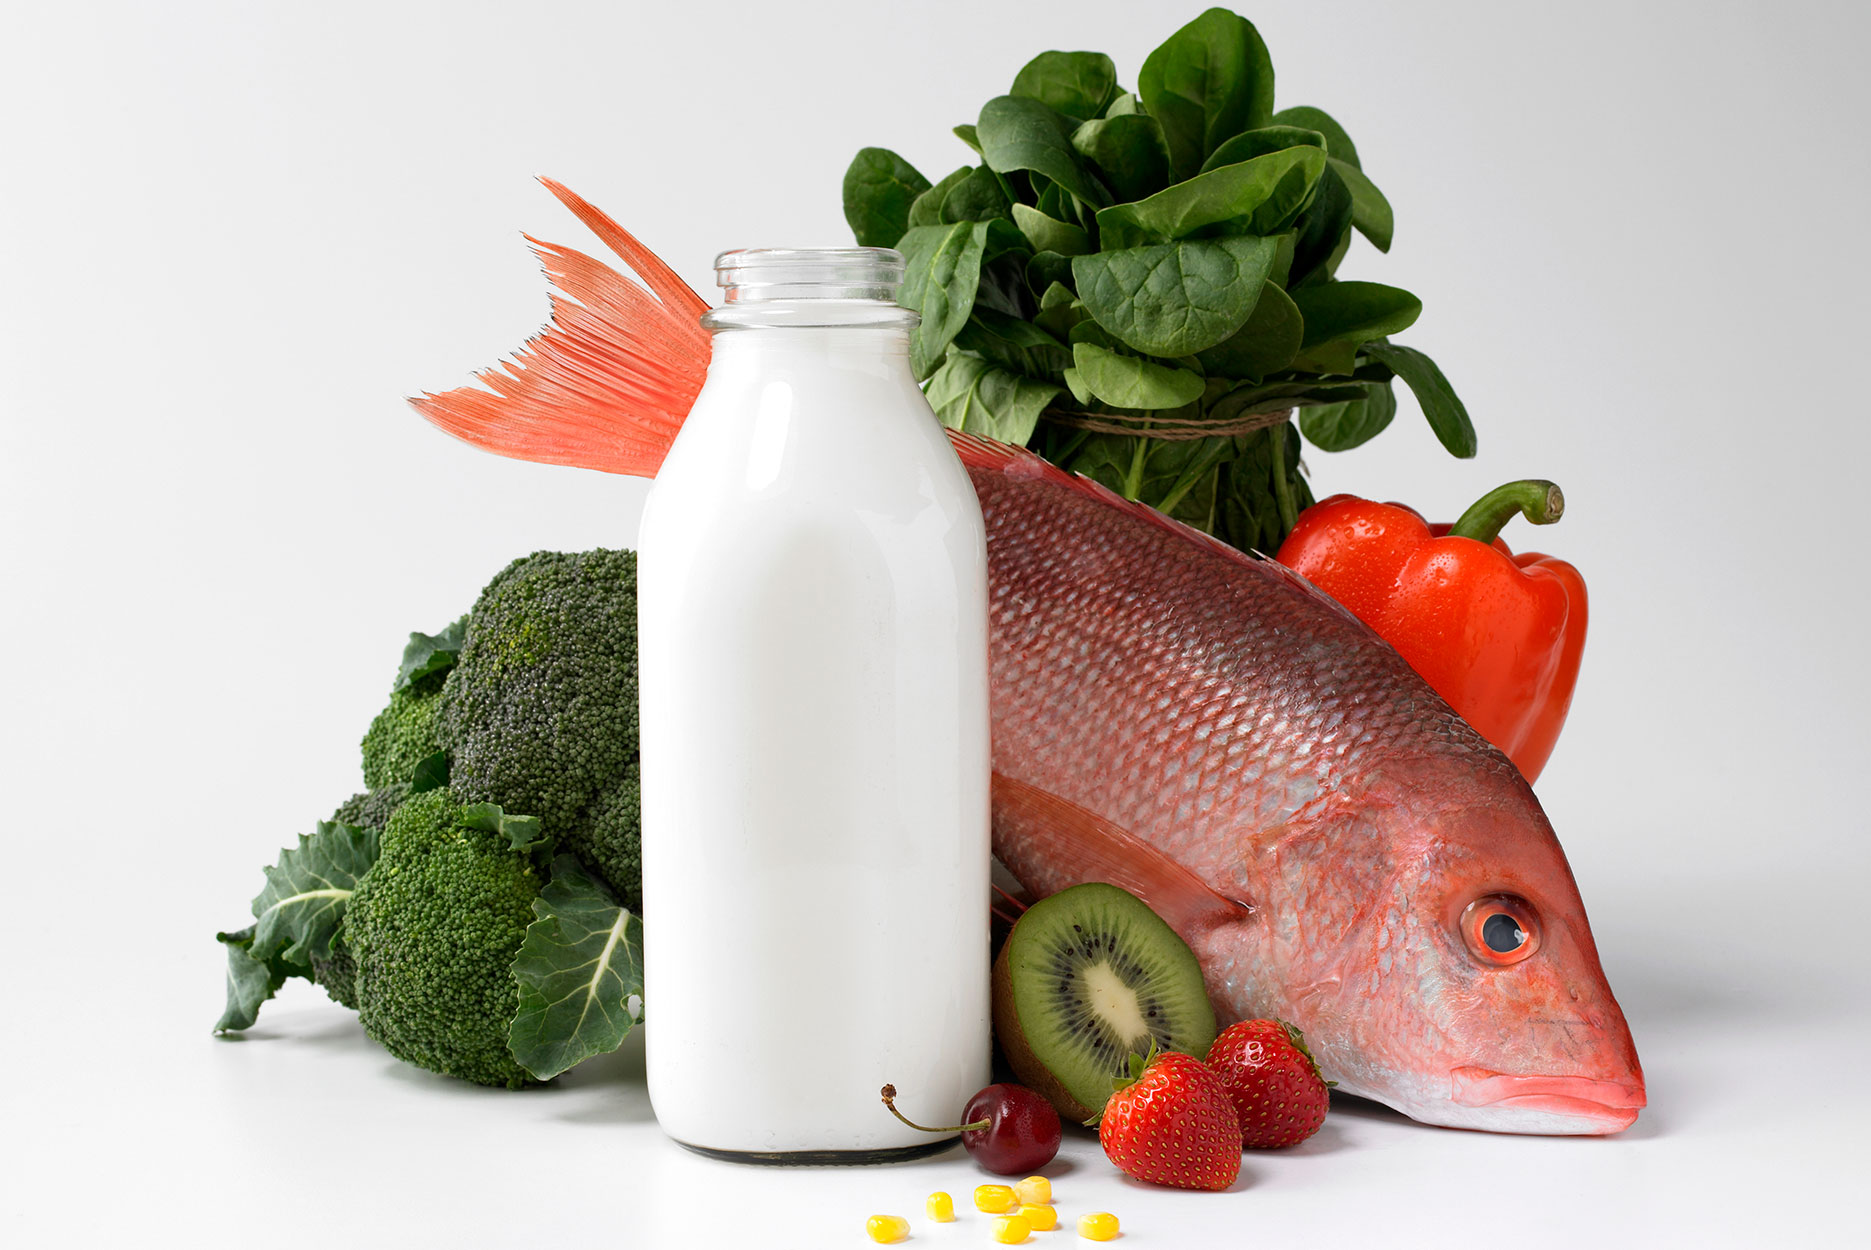 Bottle of milk, fish, fruits and vegetables.